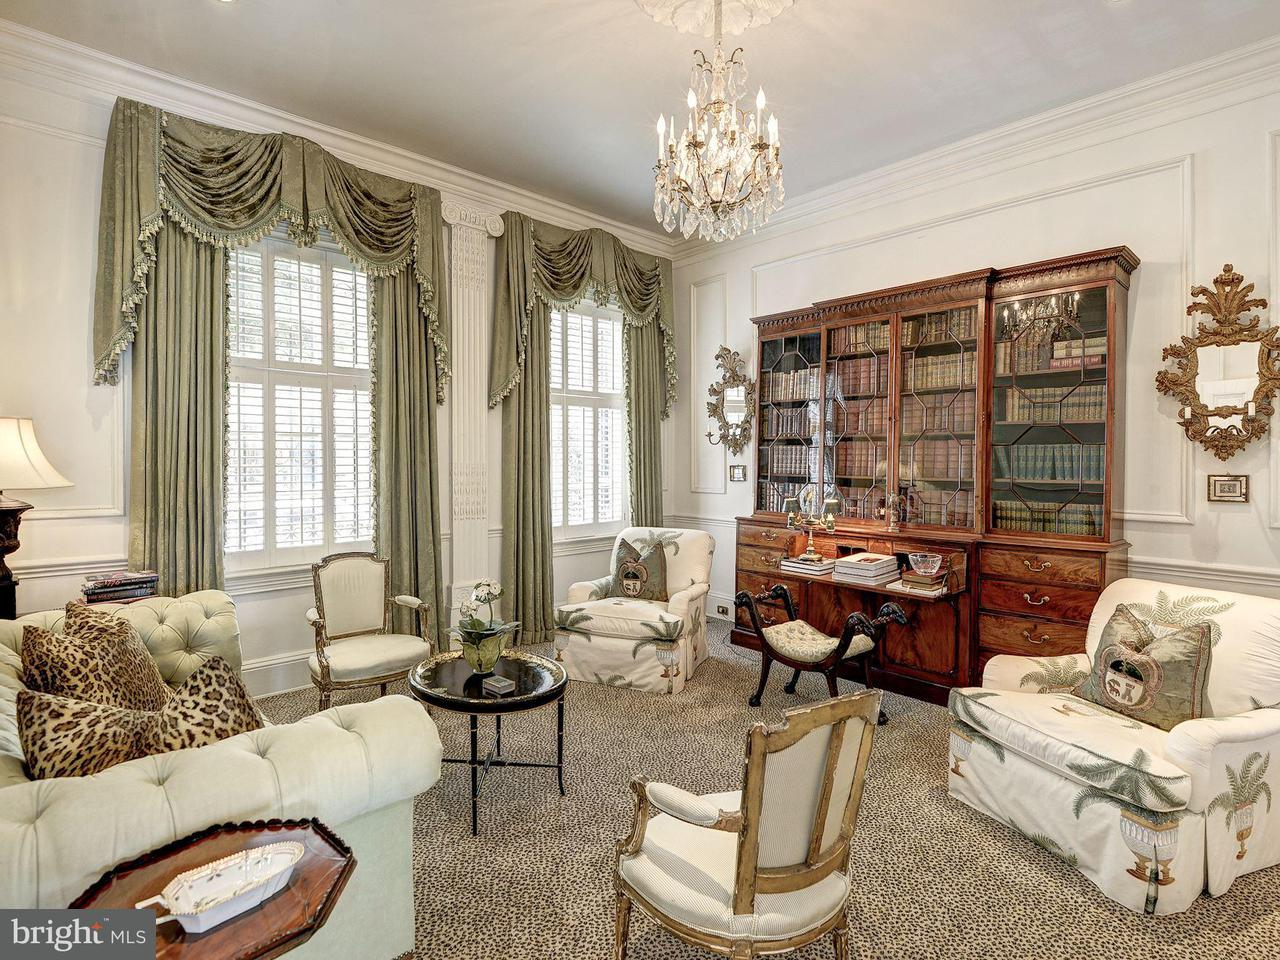 Additional photo for property listing at 3306 O St NW  Washington, District Of Columbia 20007 United States